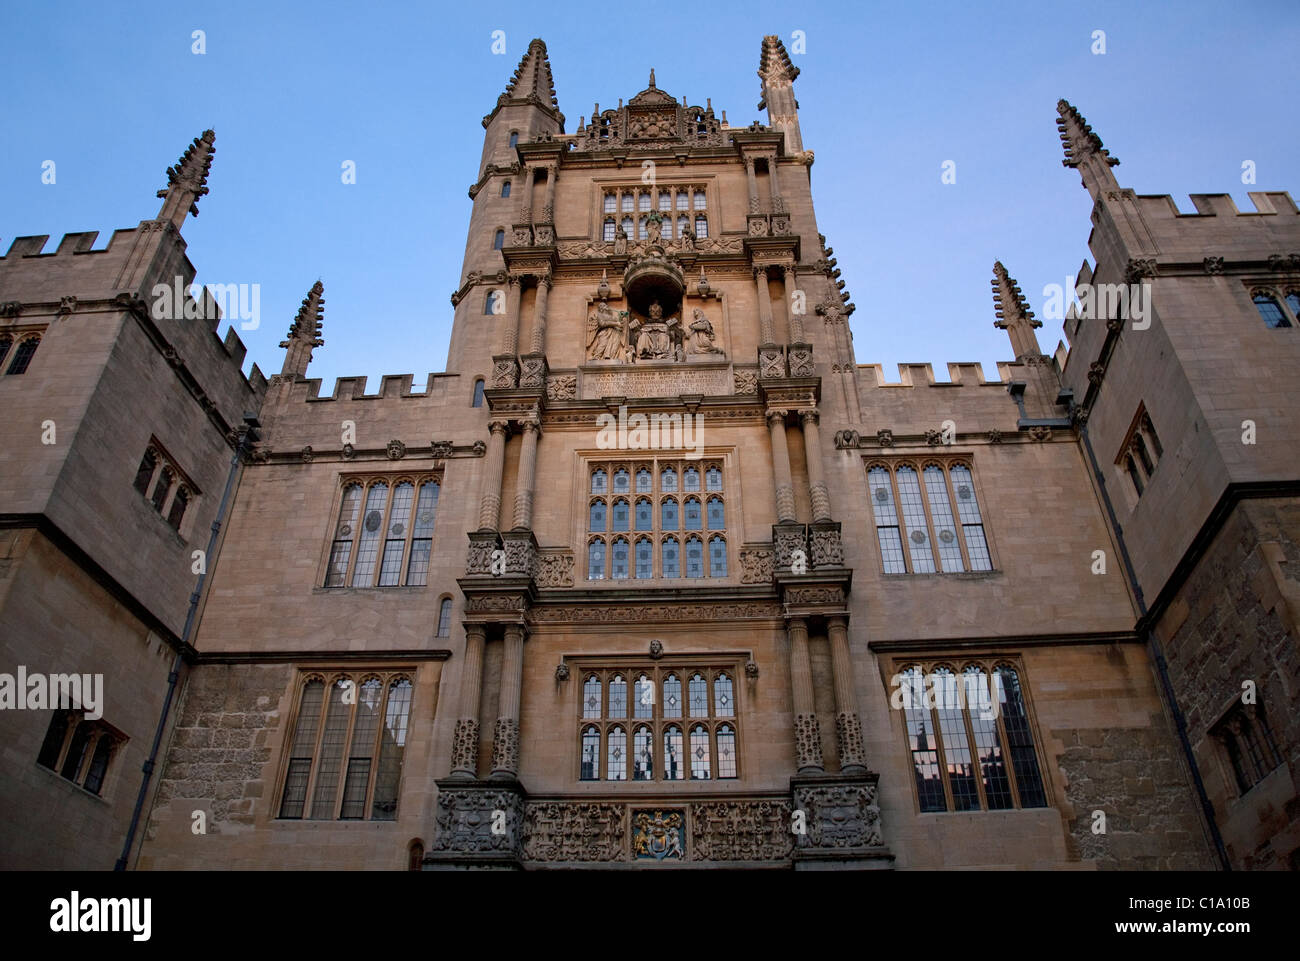 Entrance of the Bodleian Library / Bodley of the Oxford University, Oxfordshire, England, UK - Stock Image